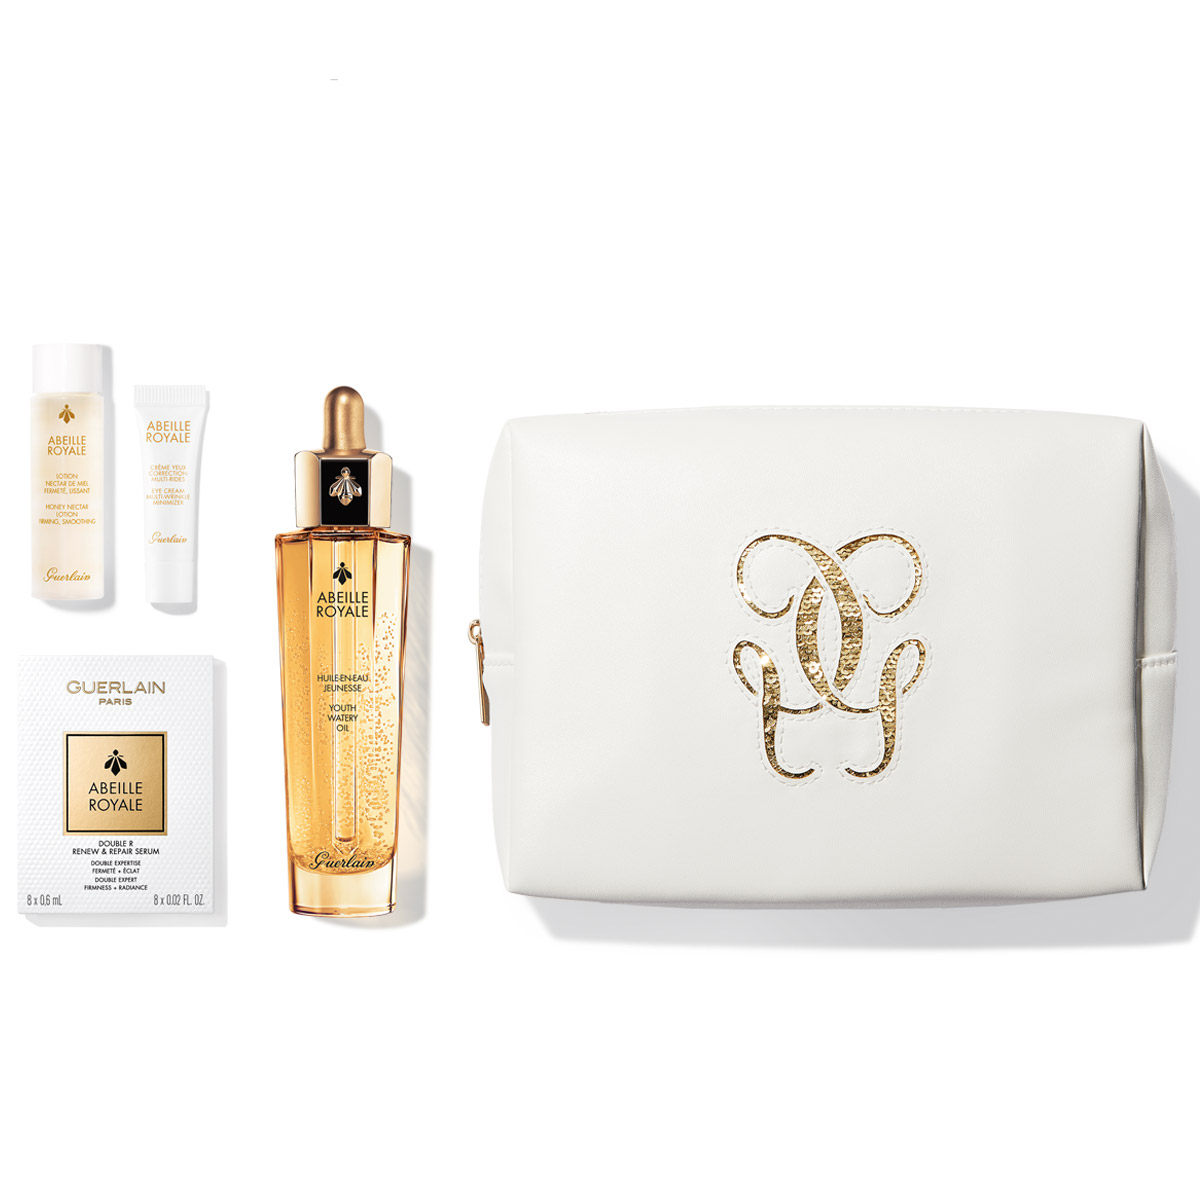 SET DE ACEITE ANTIEDAD ABEILLE ROYALE